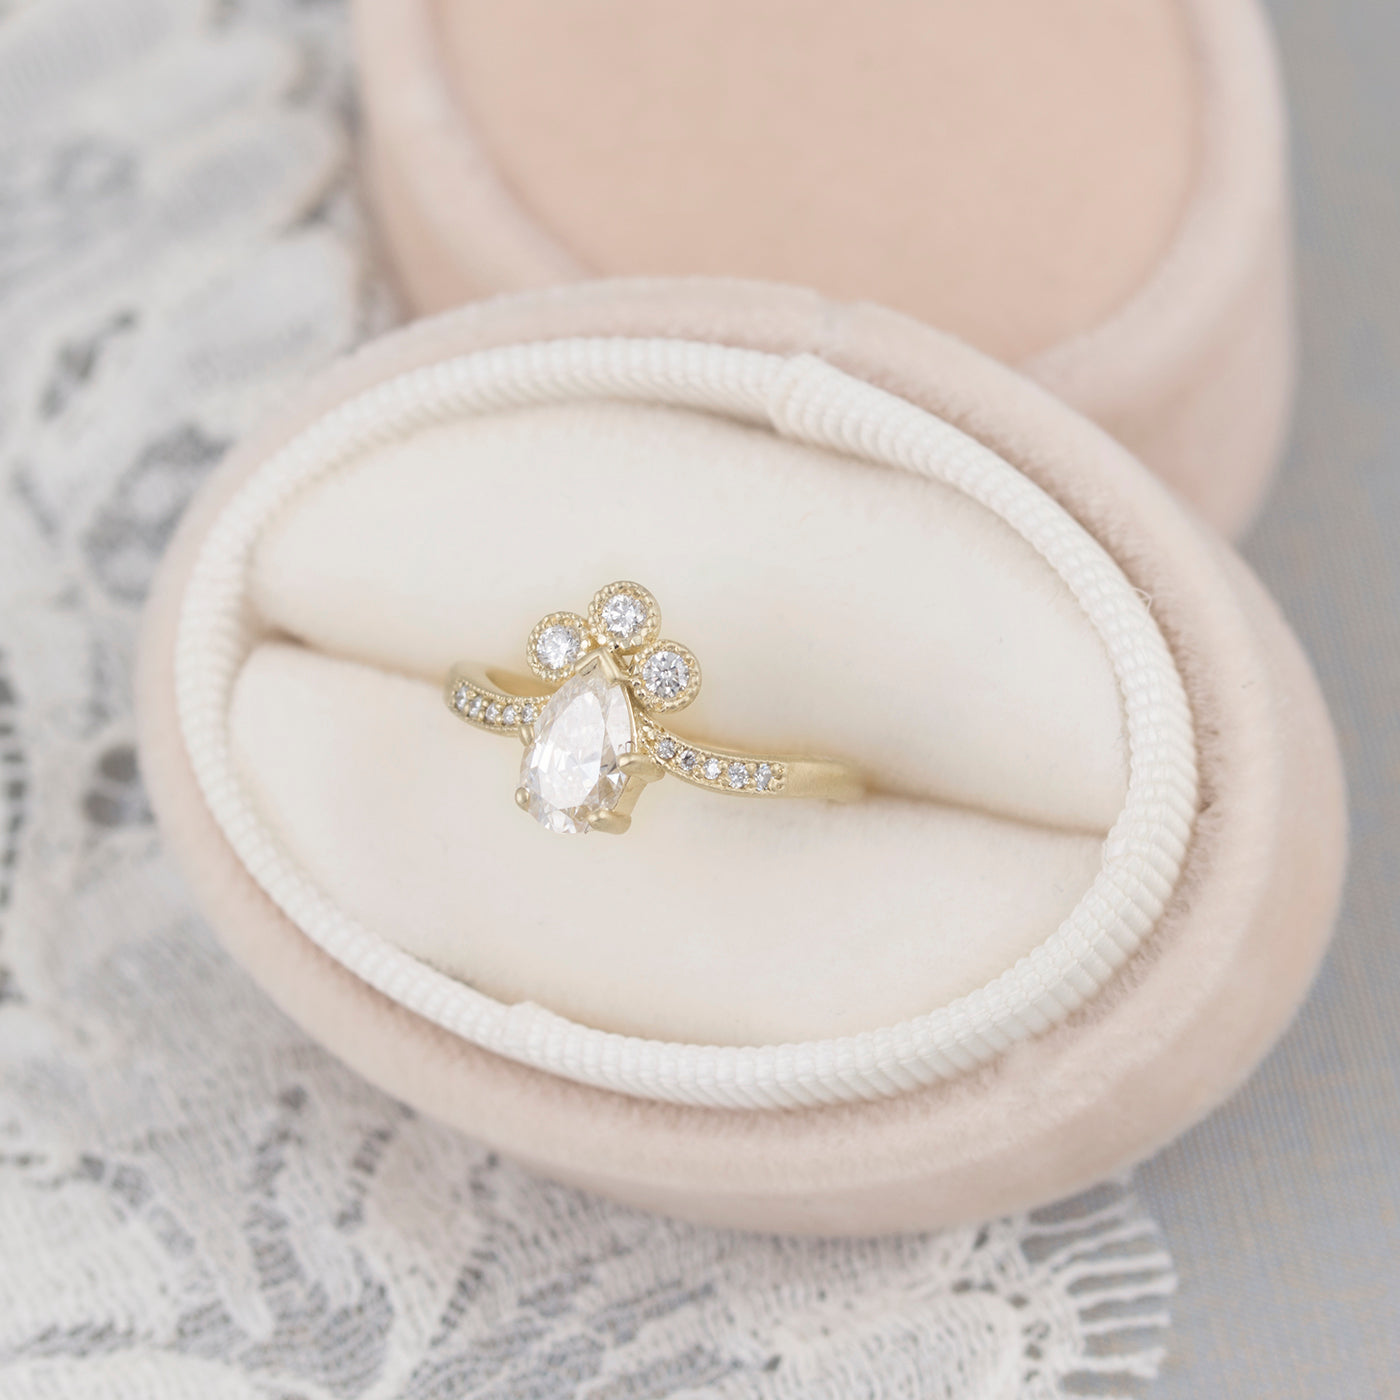 engagement cross pear in shaped criss wedding halo rings nl gold diamond rg vintage white ring fascinating rose with jewelry